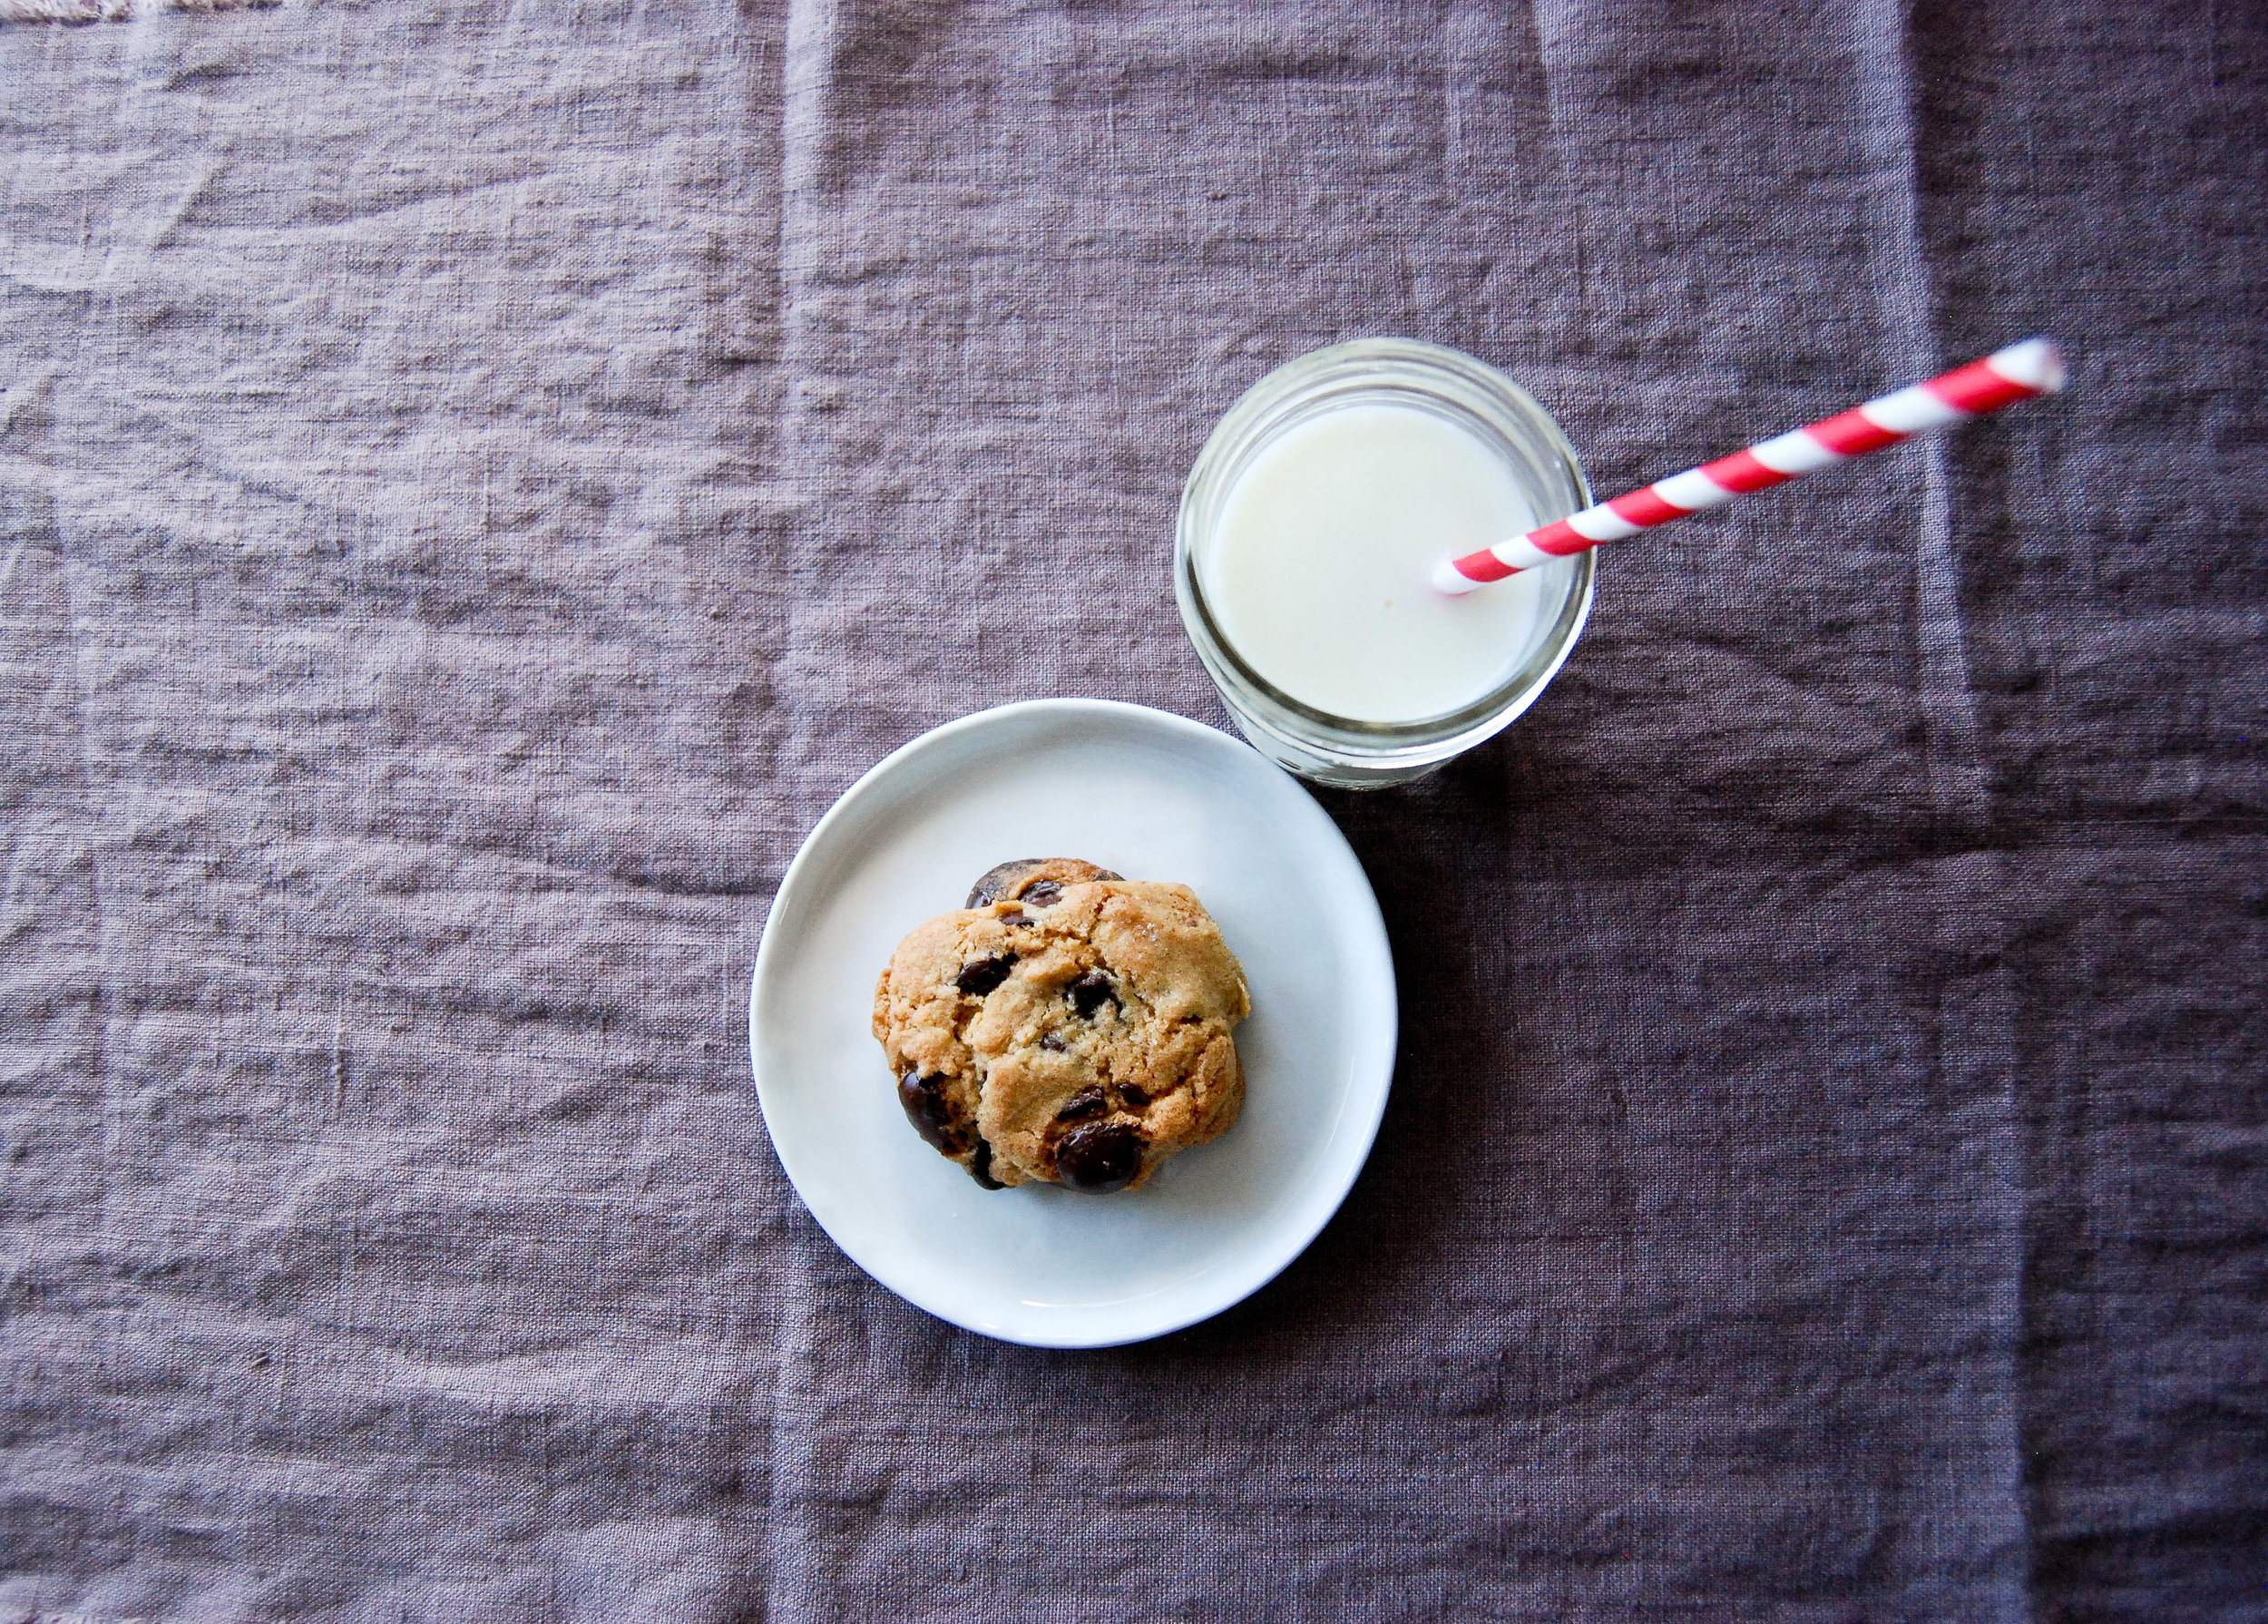 Chocolate Chip Cookie With Milk